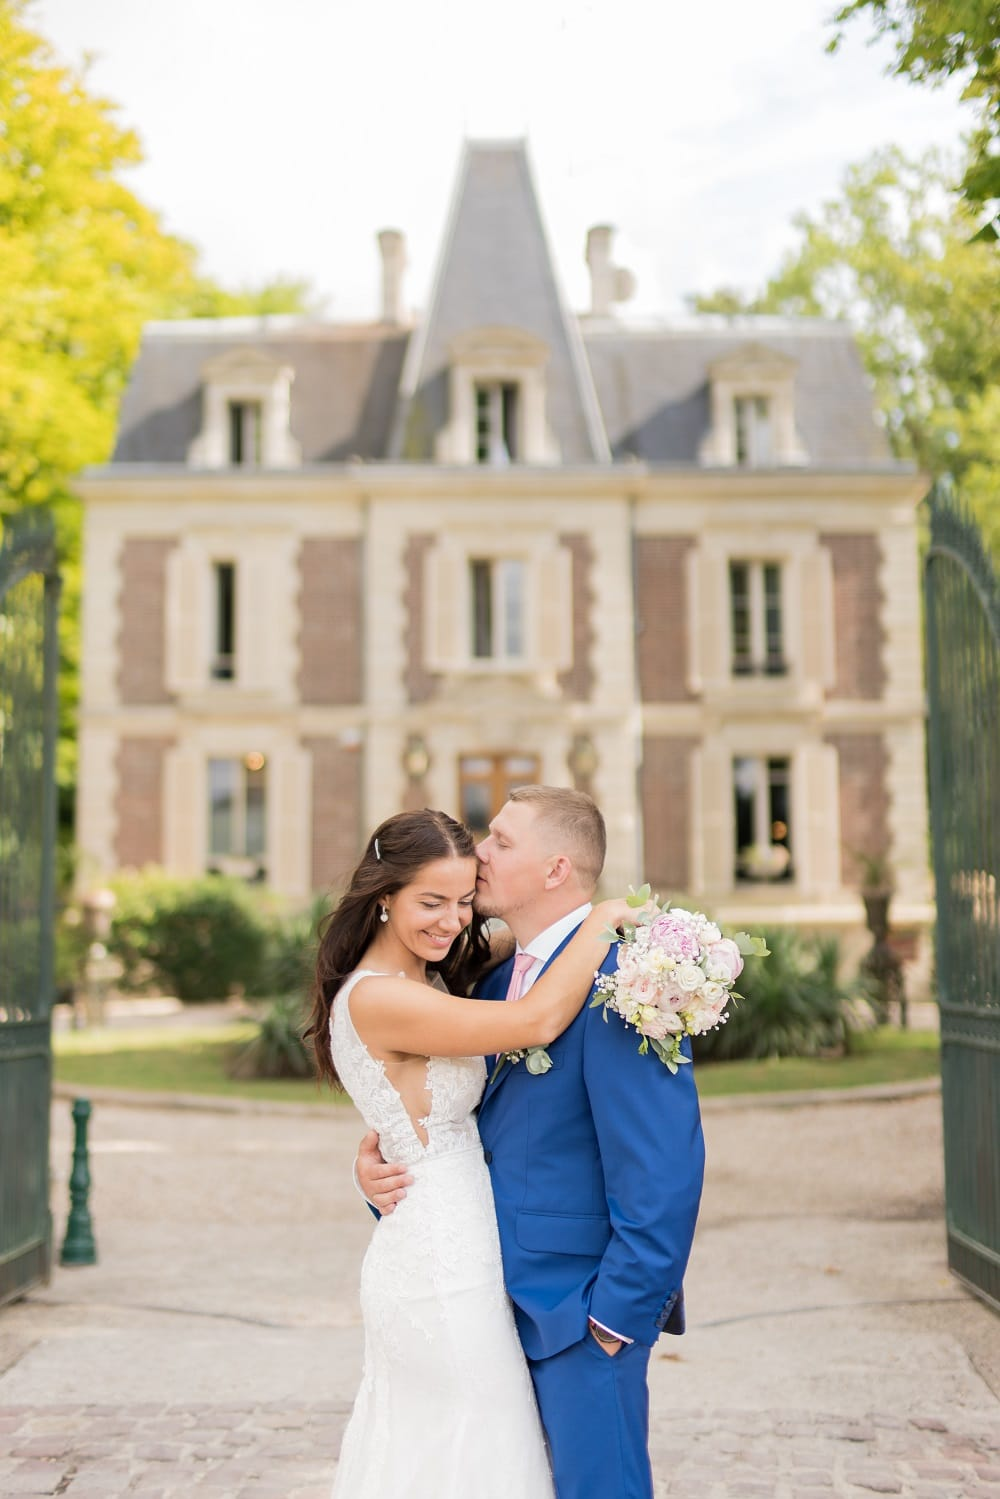 Noces du Monde Worldwide Wedding Planner based in France, member of the Destination Wedding Directory by Weddings Abroad Guide